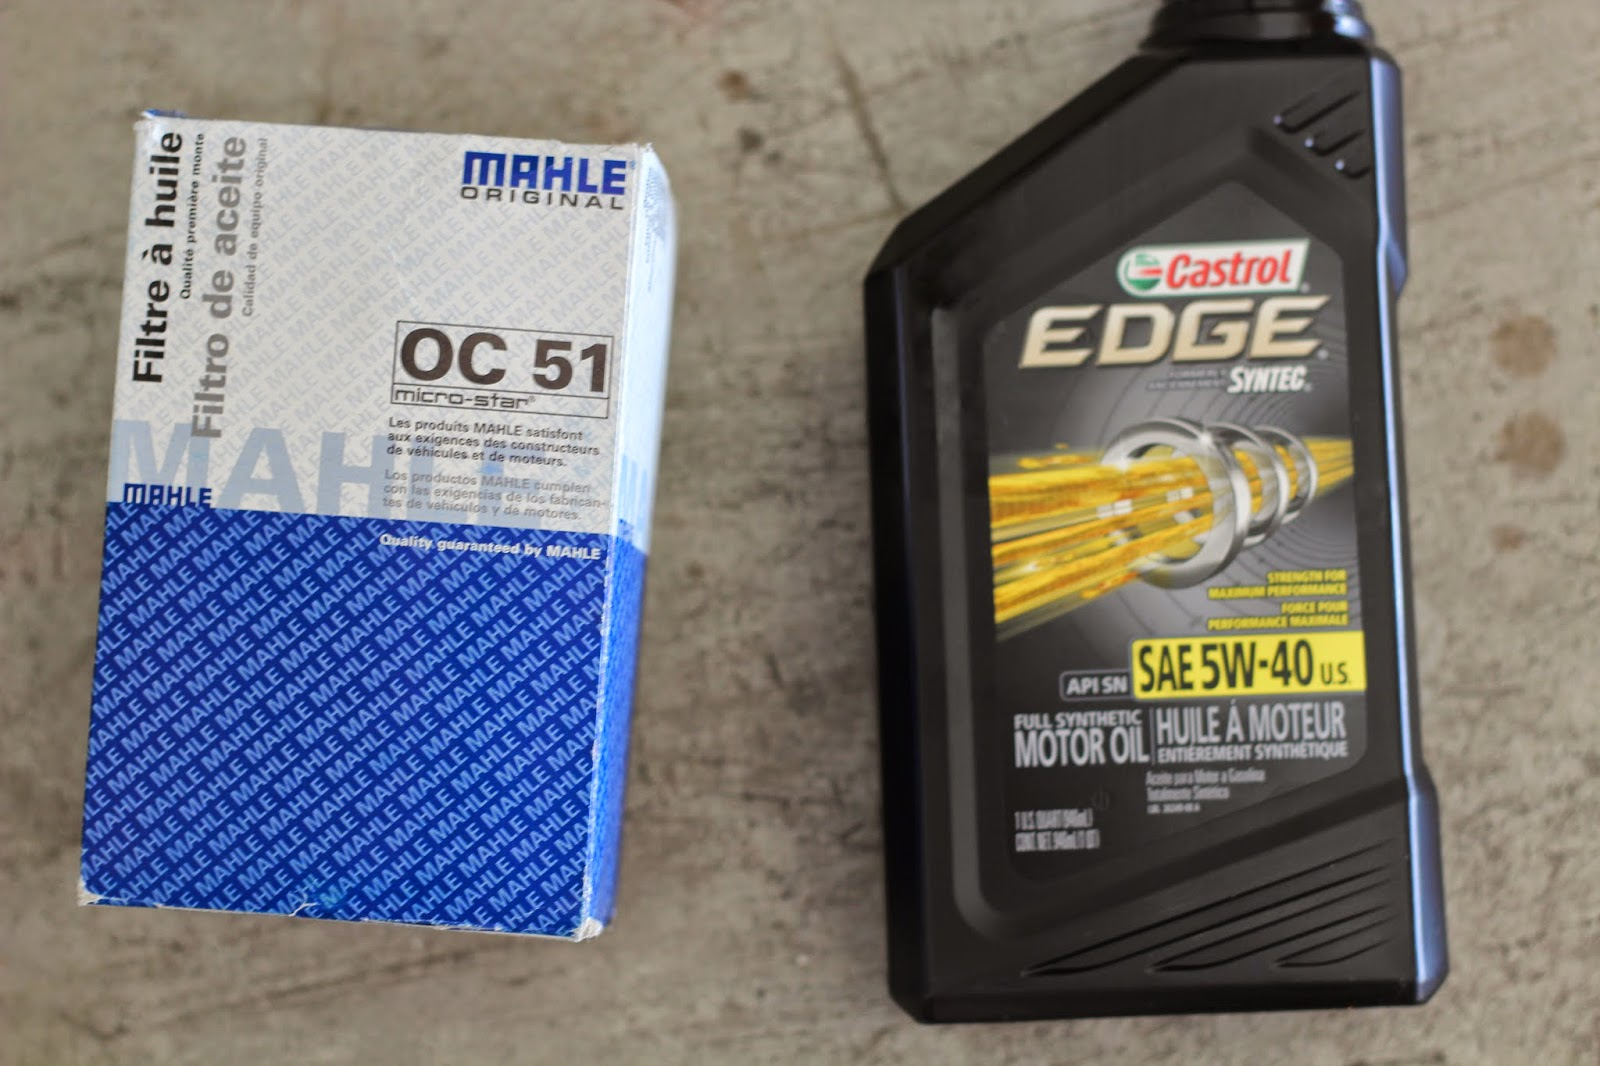 small resolution of 5 i have been using oc 51 mahle filter and sae 5w 40 castrol take new filter and dip screw driver into fresh oil lubricate the rubber seal on the